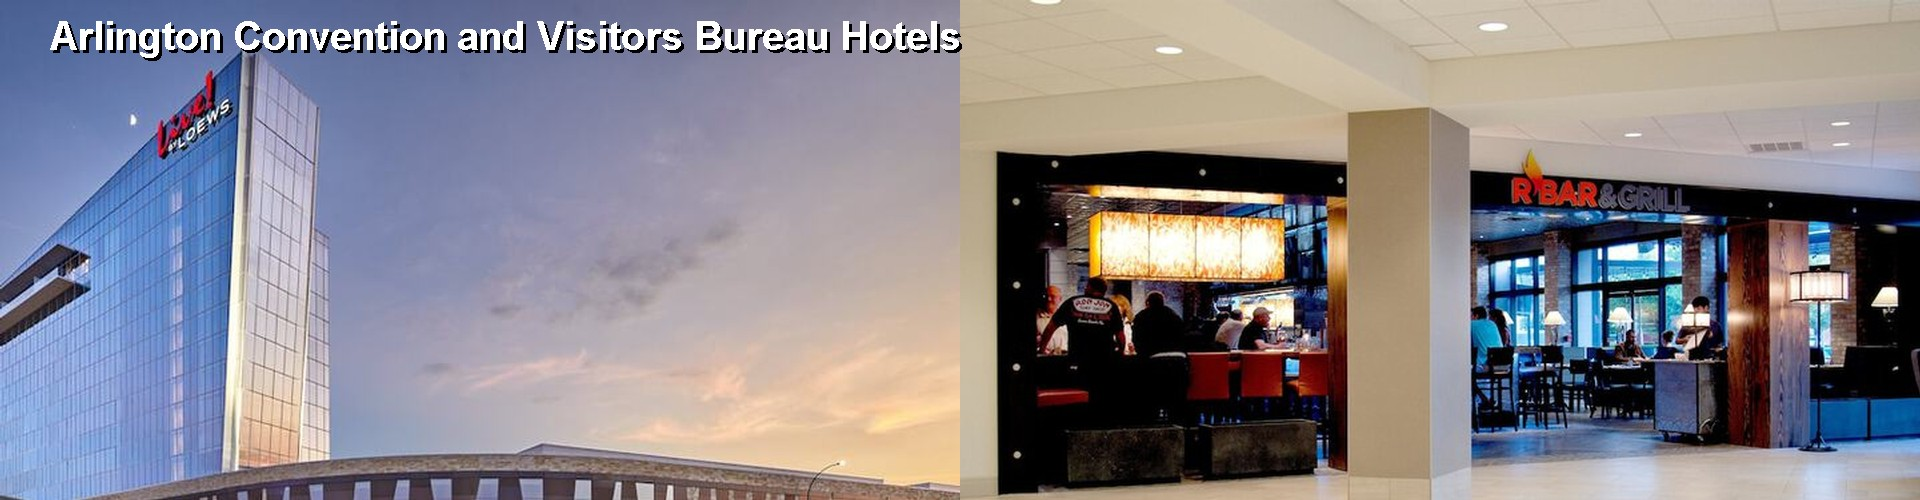 5 Best Hotels near Arlington Convention and Visitors Bureau